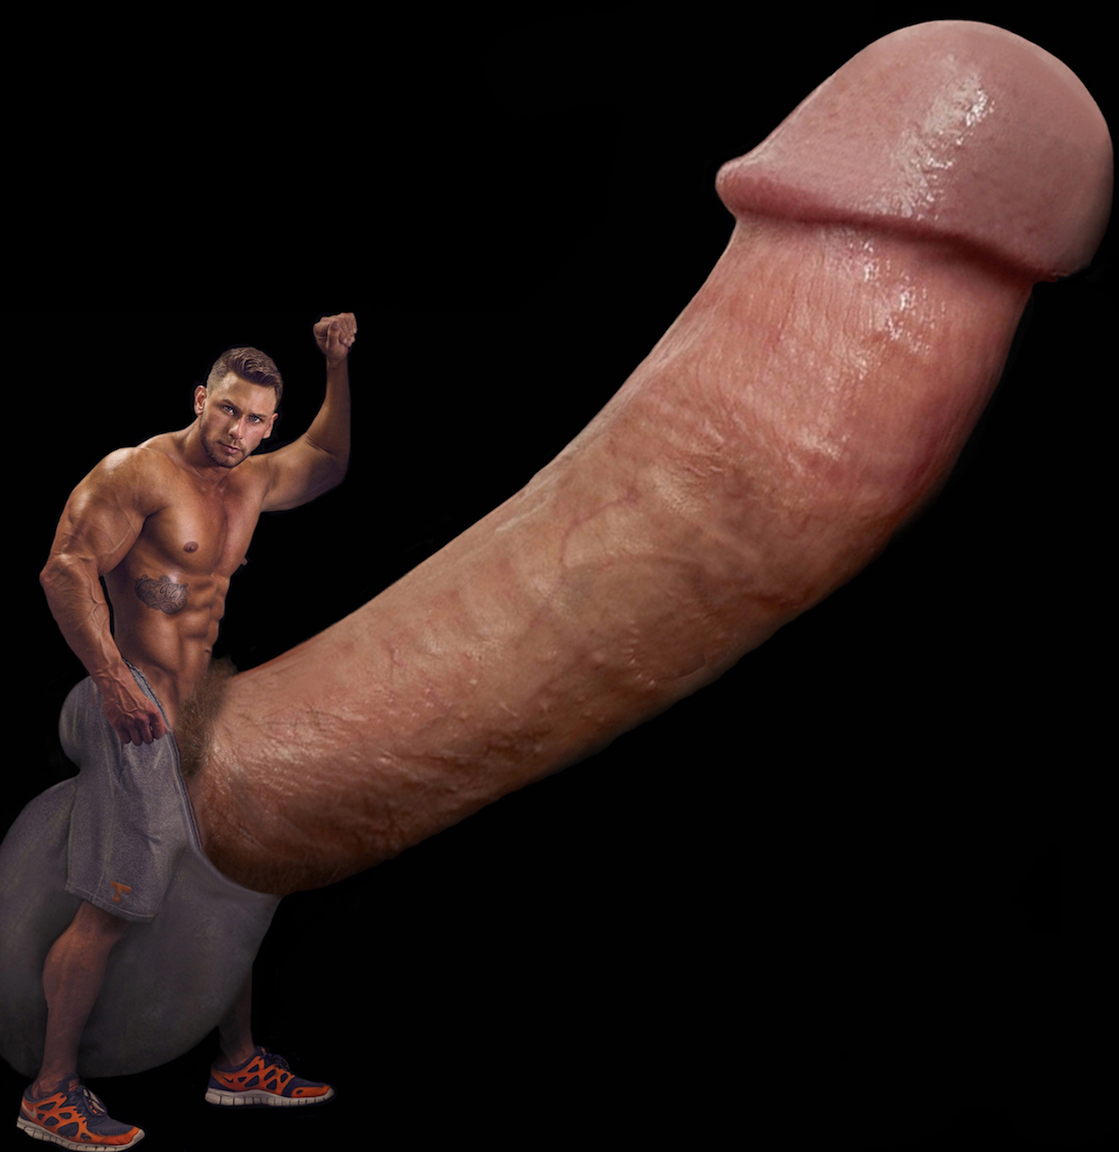 cock penis biggest World dick